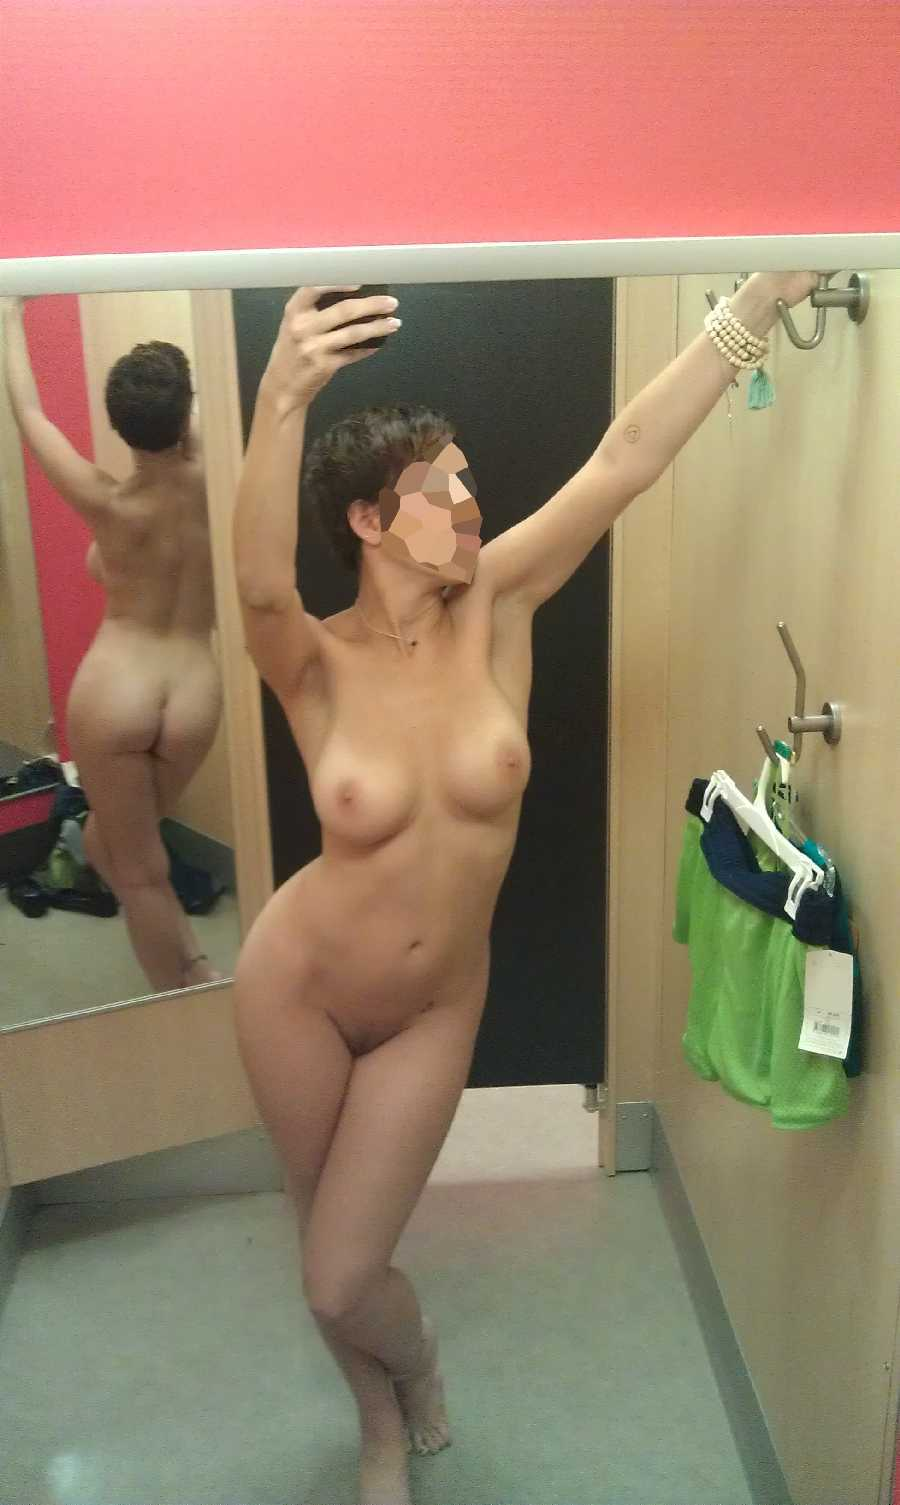 Nude Women In Fitting Room Images